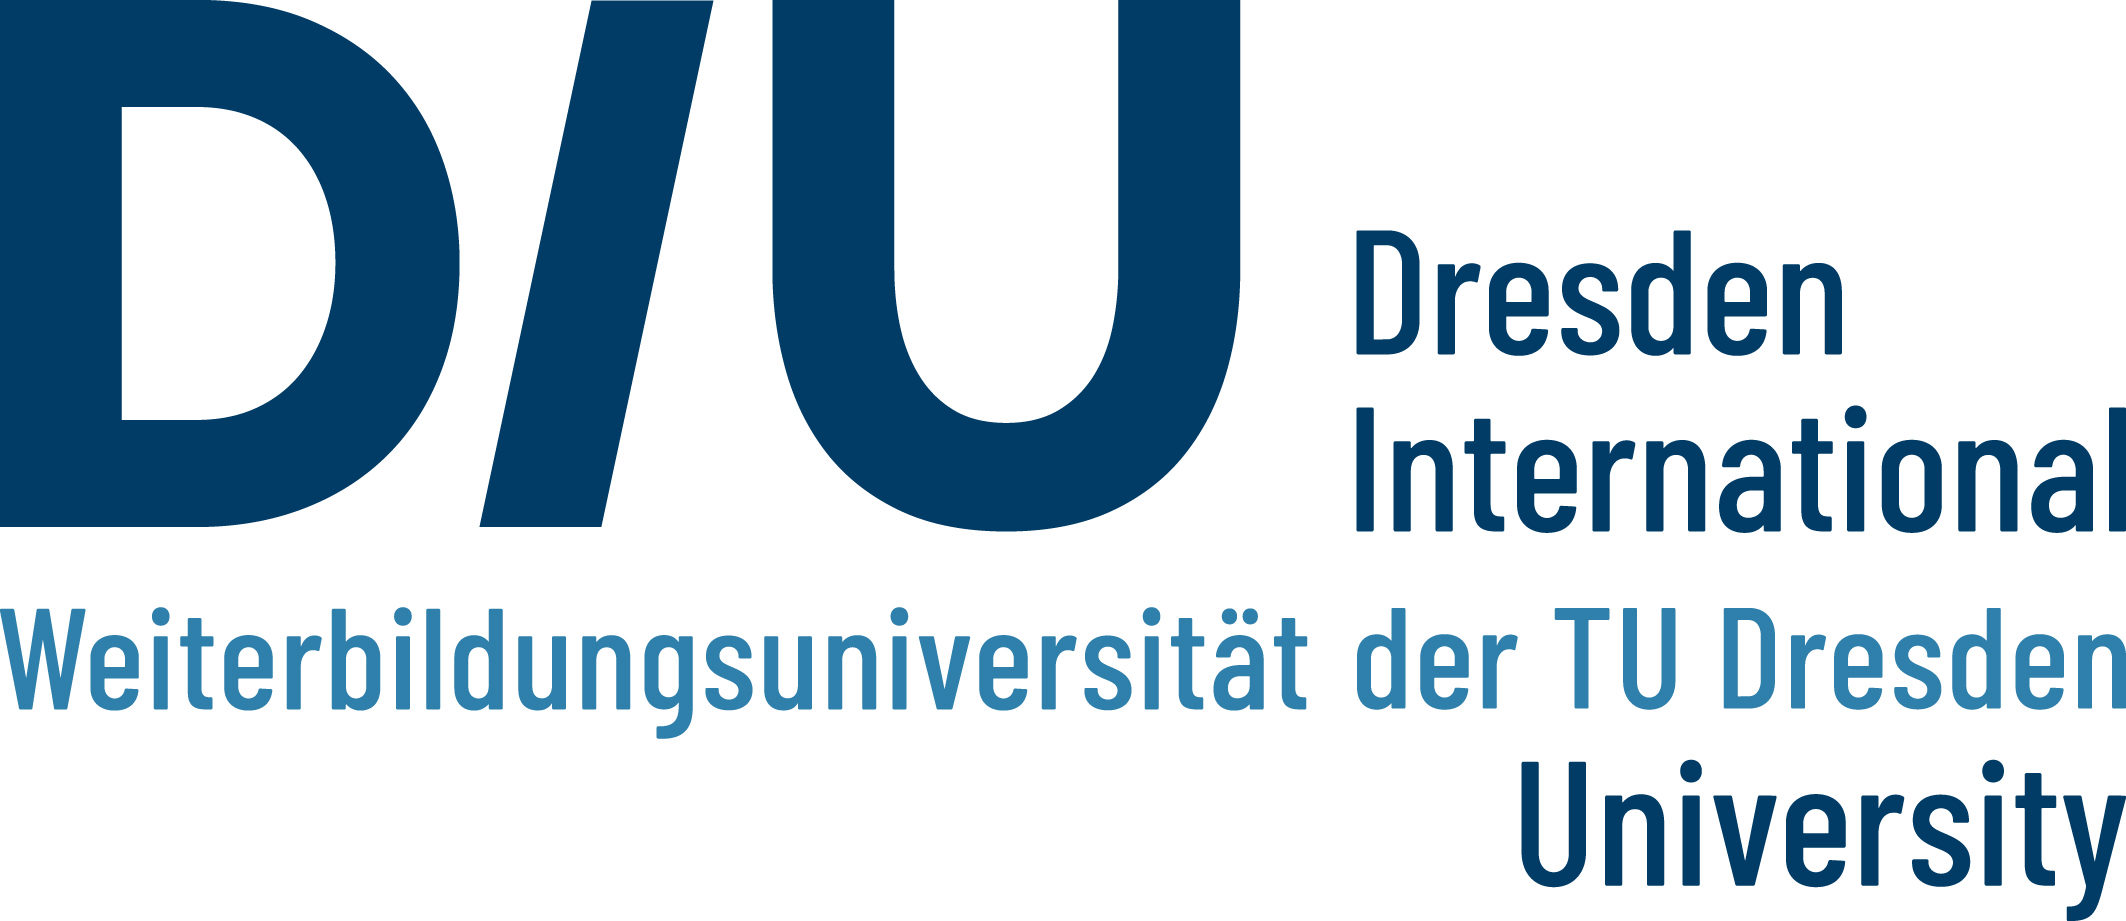 Dresden International University (DIU)